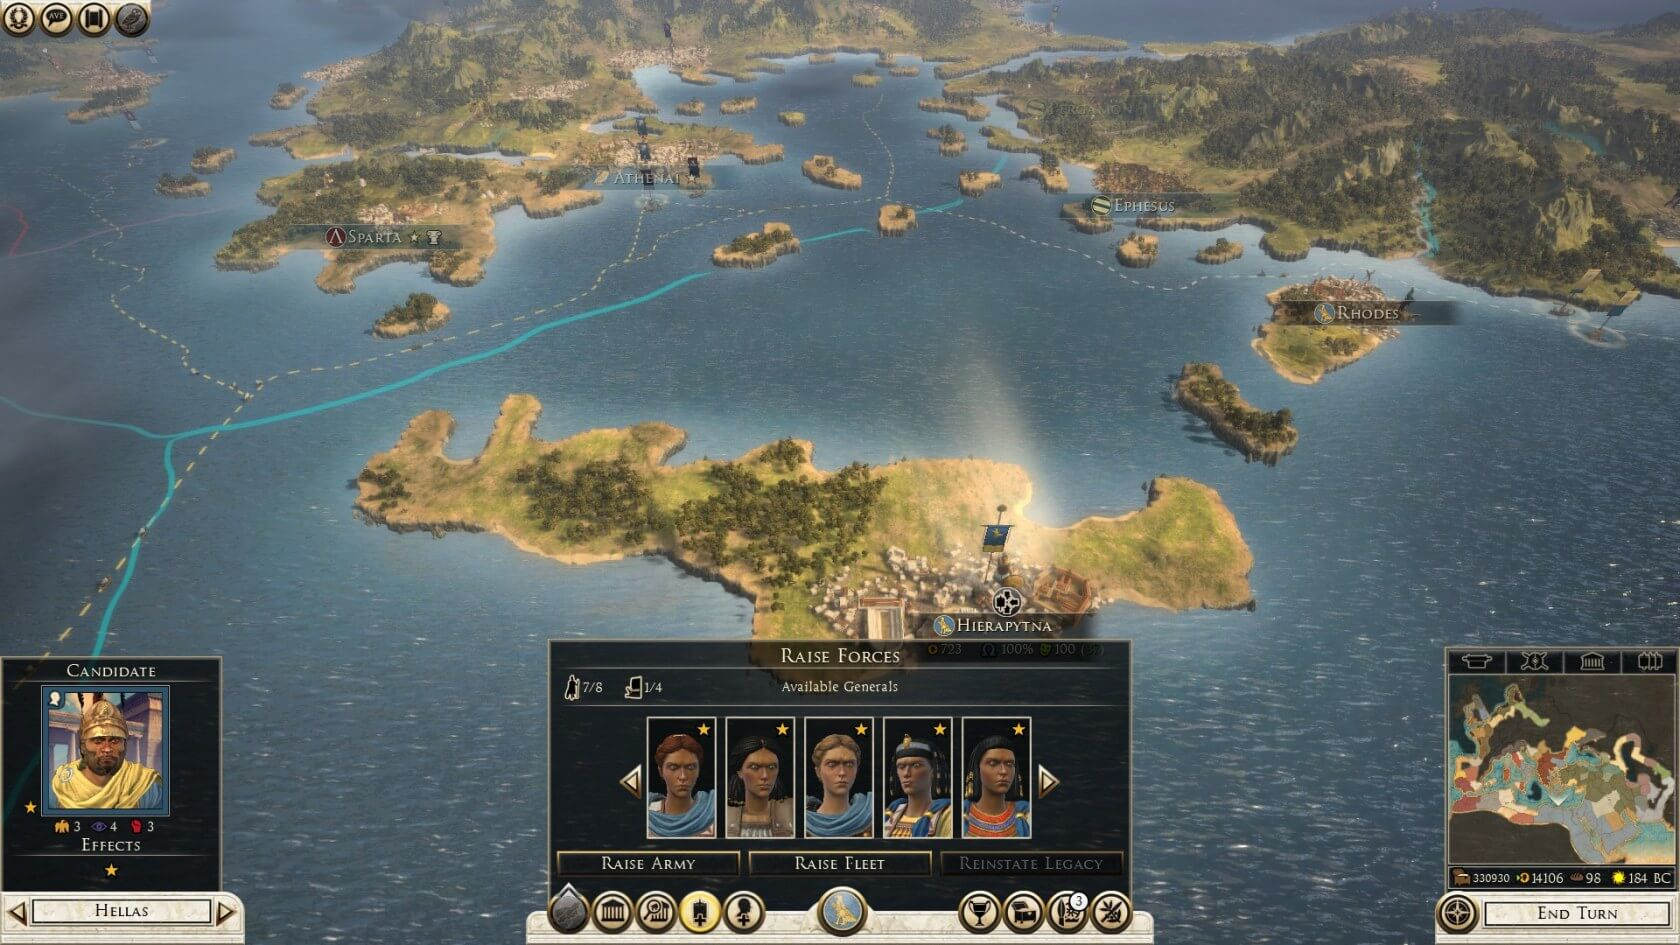 Total War: Rome 2 gets review bombed over female generals